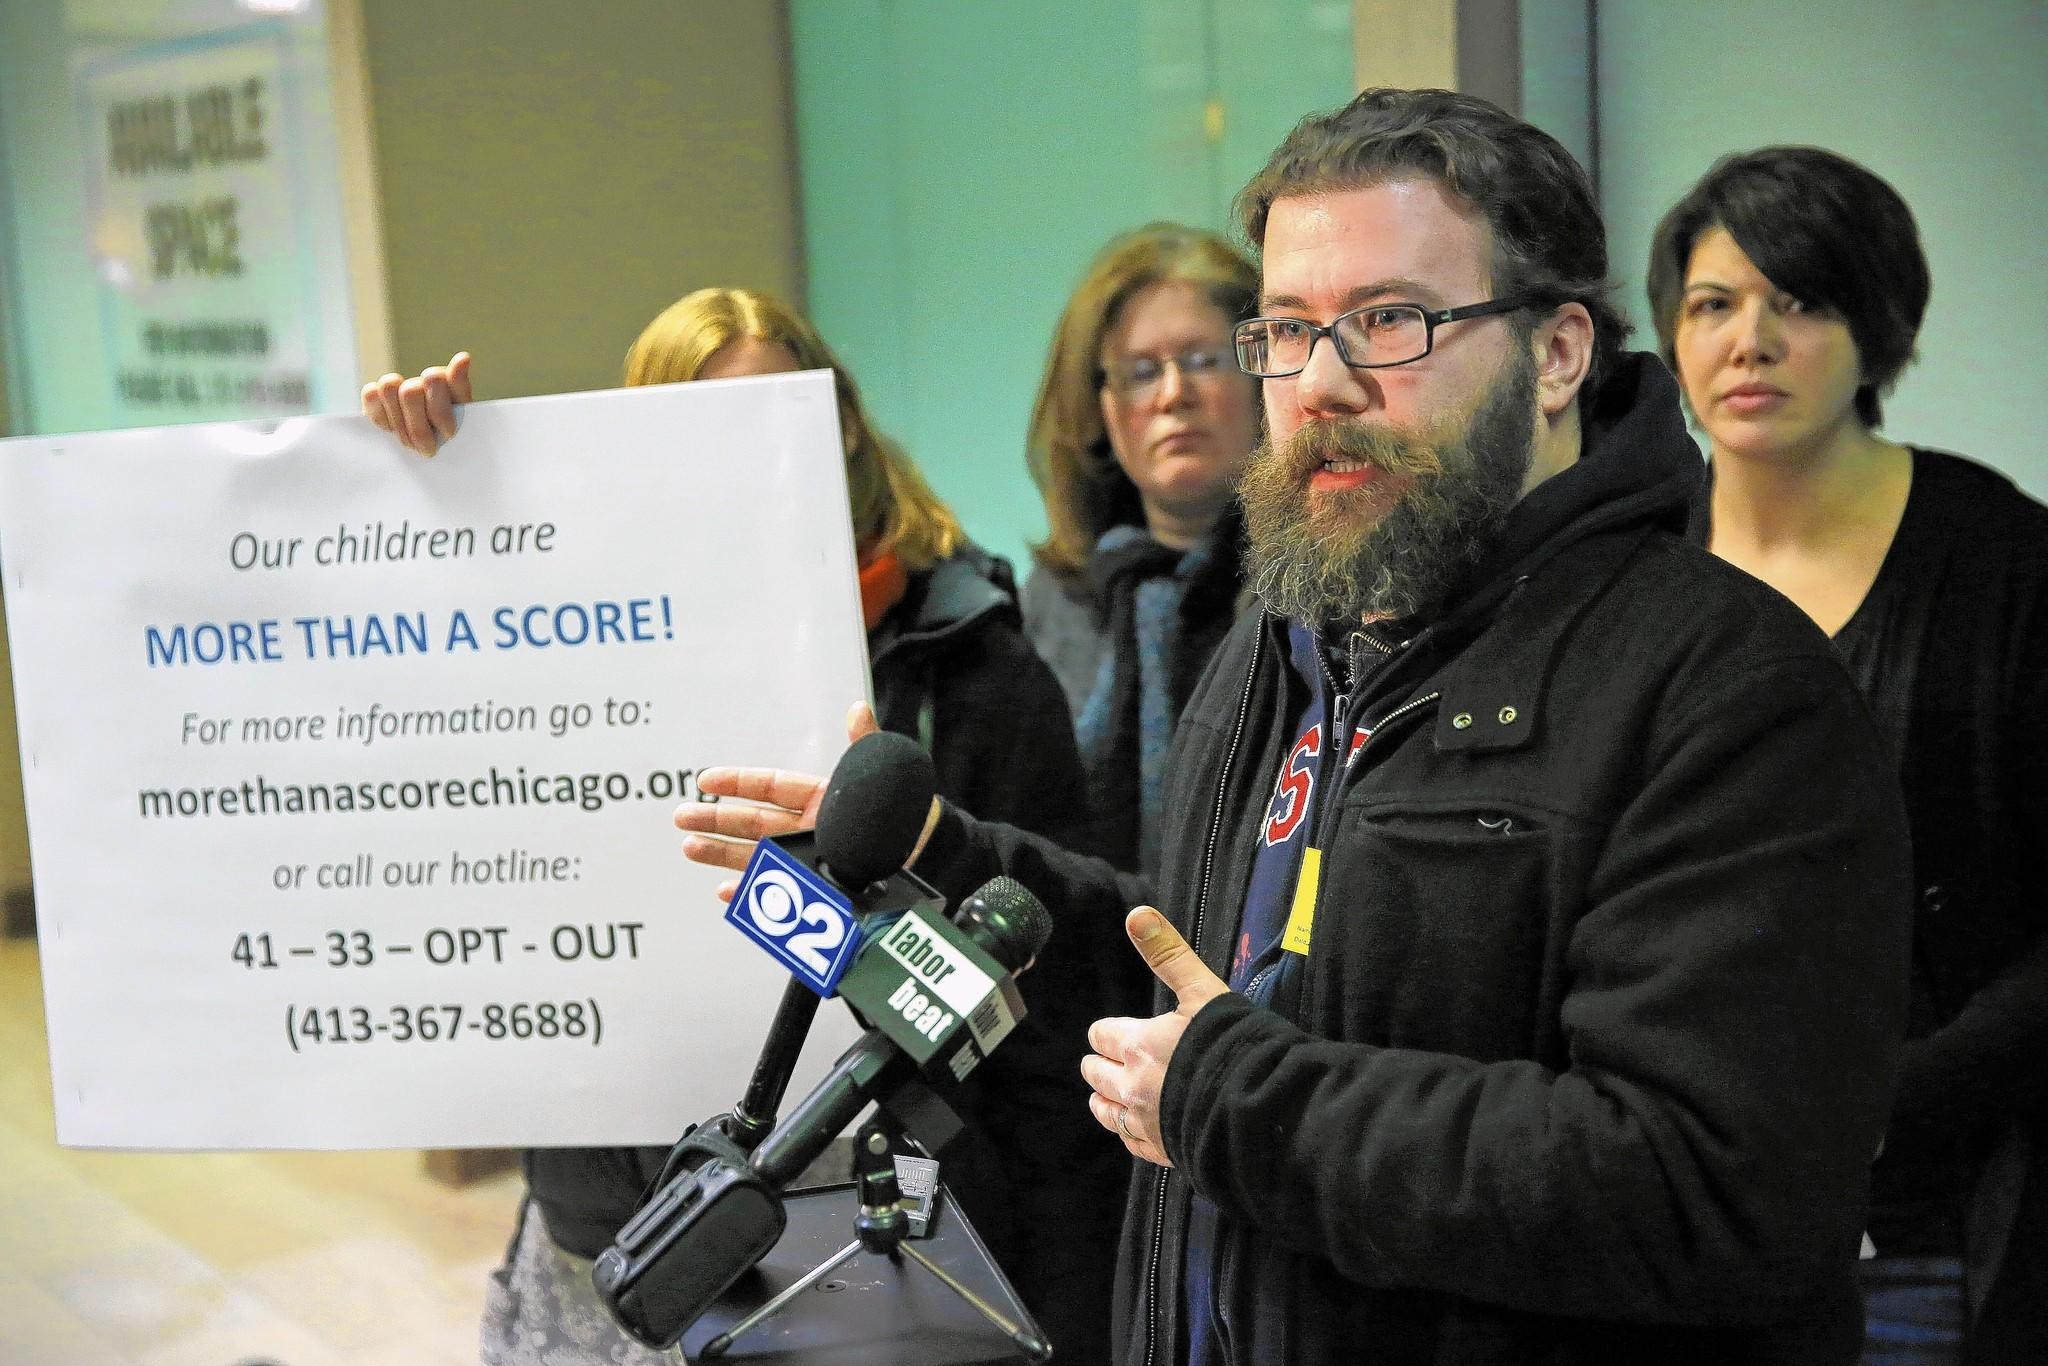 Chris Barrett, right, who has two boys in Drummond Montessori Magnet School, was among those talking about public school students boycotting the Illinois Standards Achievement Test at CPS headquarters on Monday. A new coalition of parent groups is pushing the boycott.